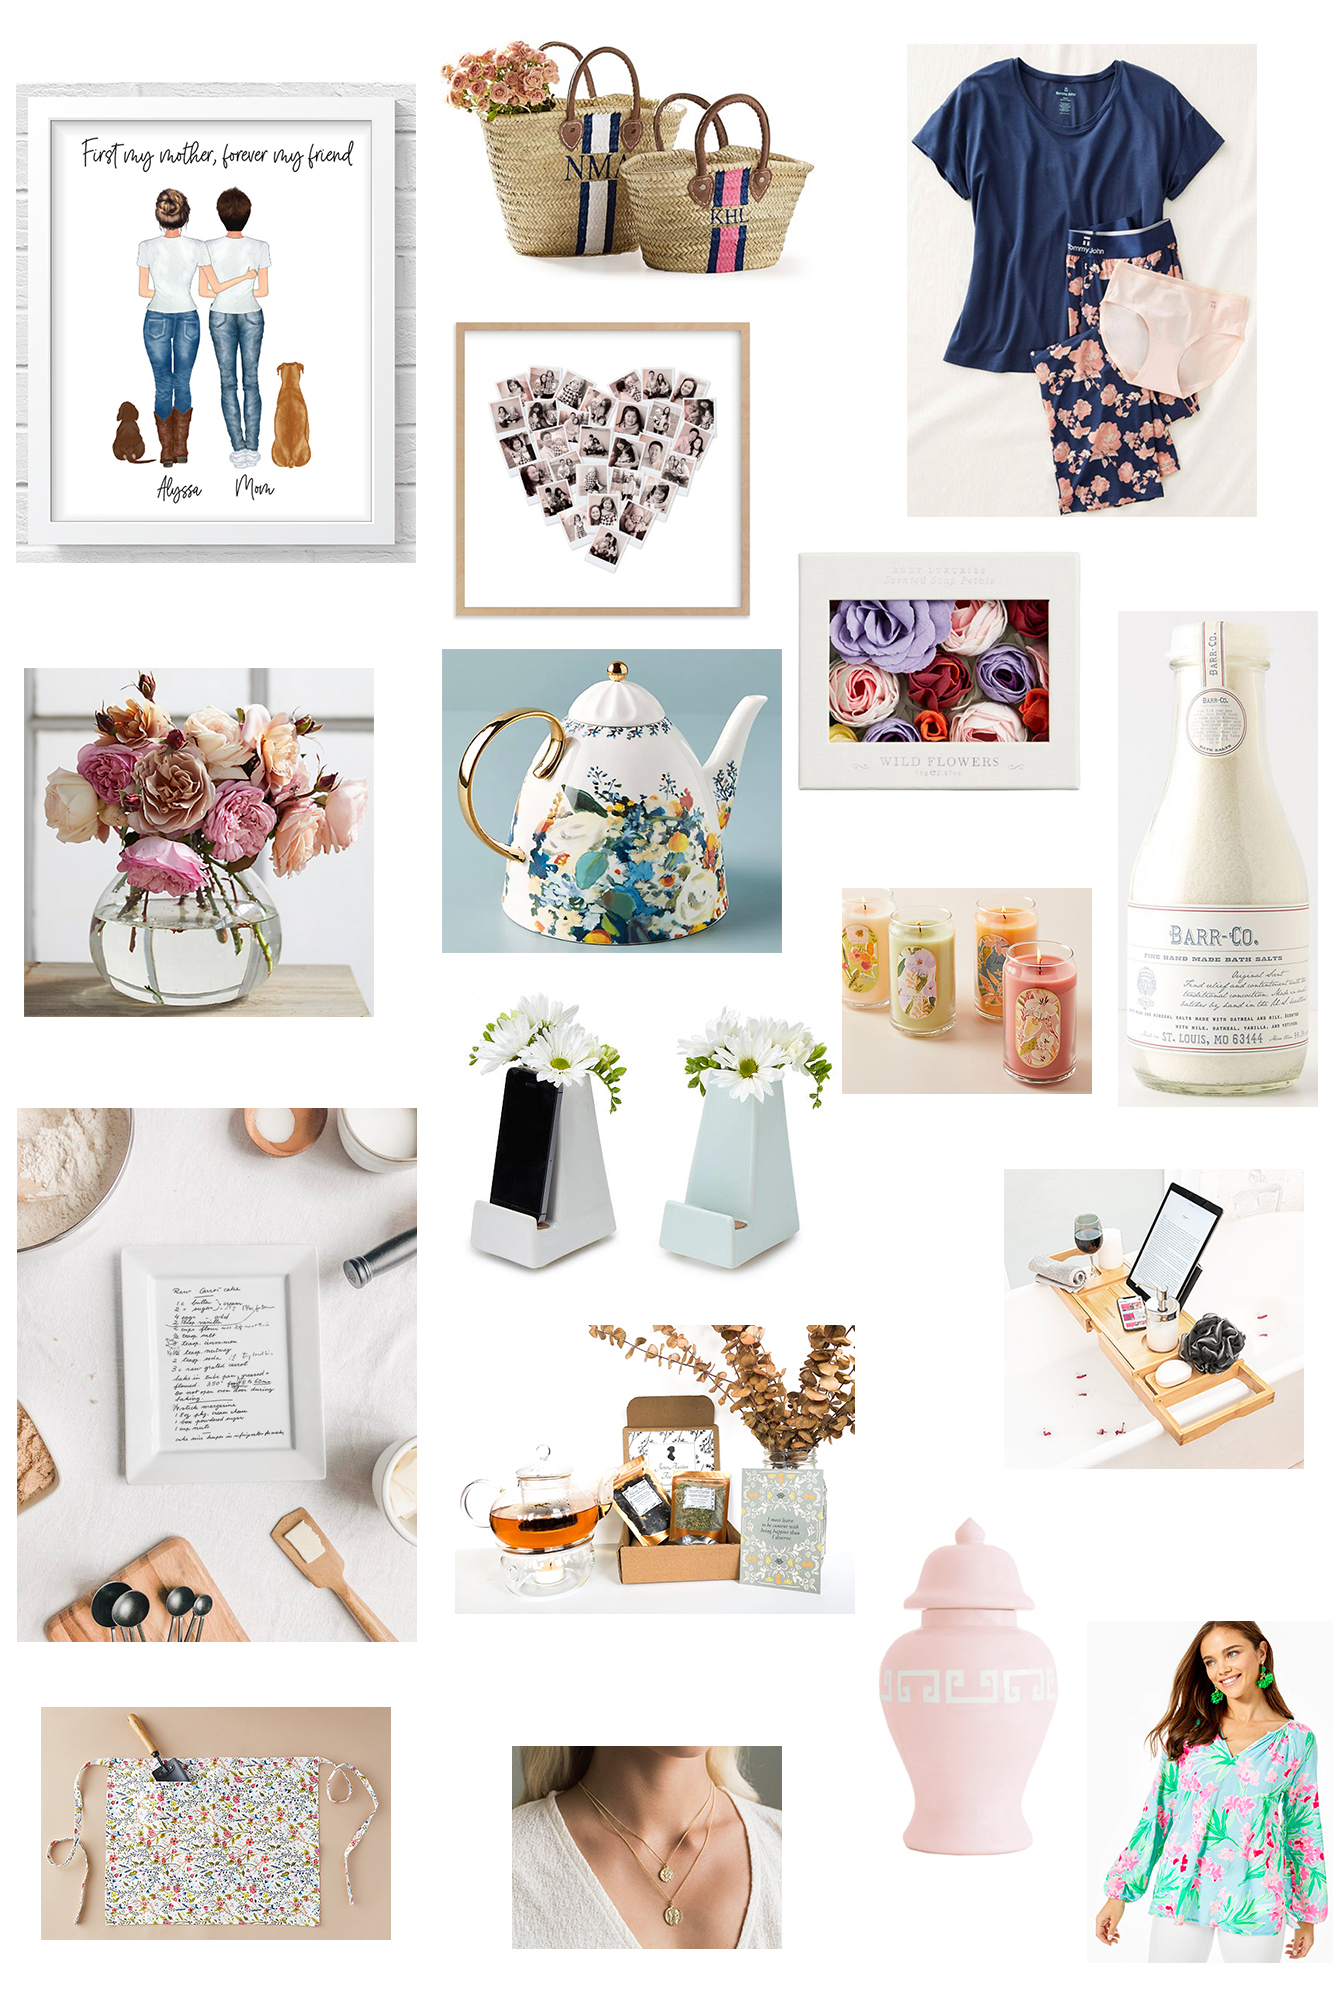 The Best Mother's Day Gift Guide - Fun ideas on how to celebrate mother's day remotely while in quarantine, special and affordable gift ideas.